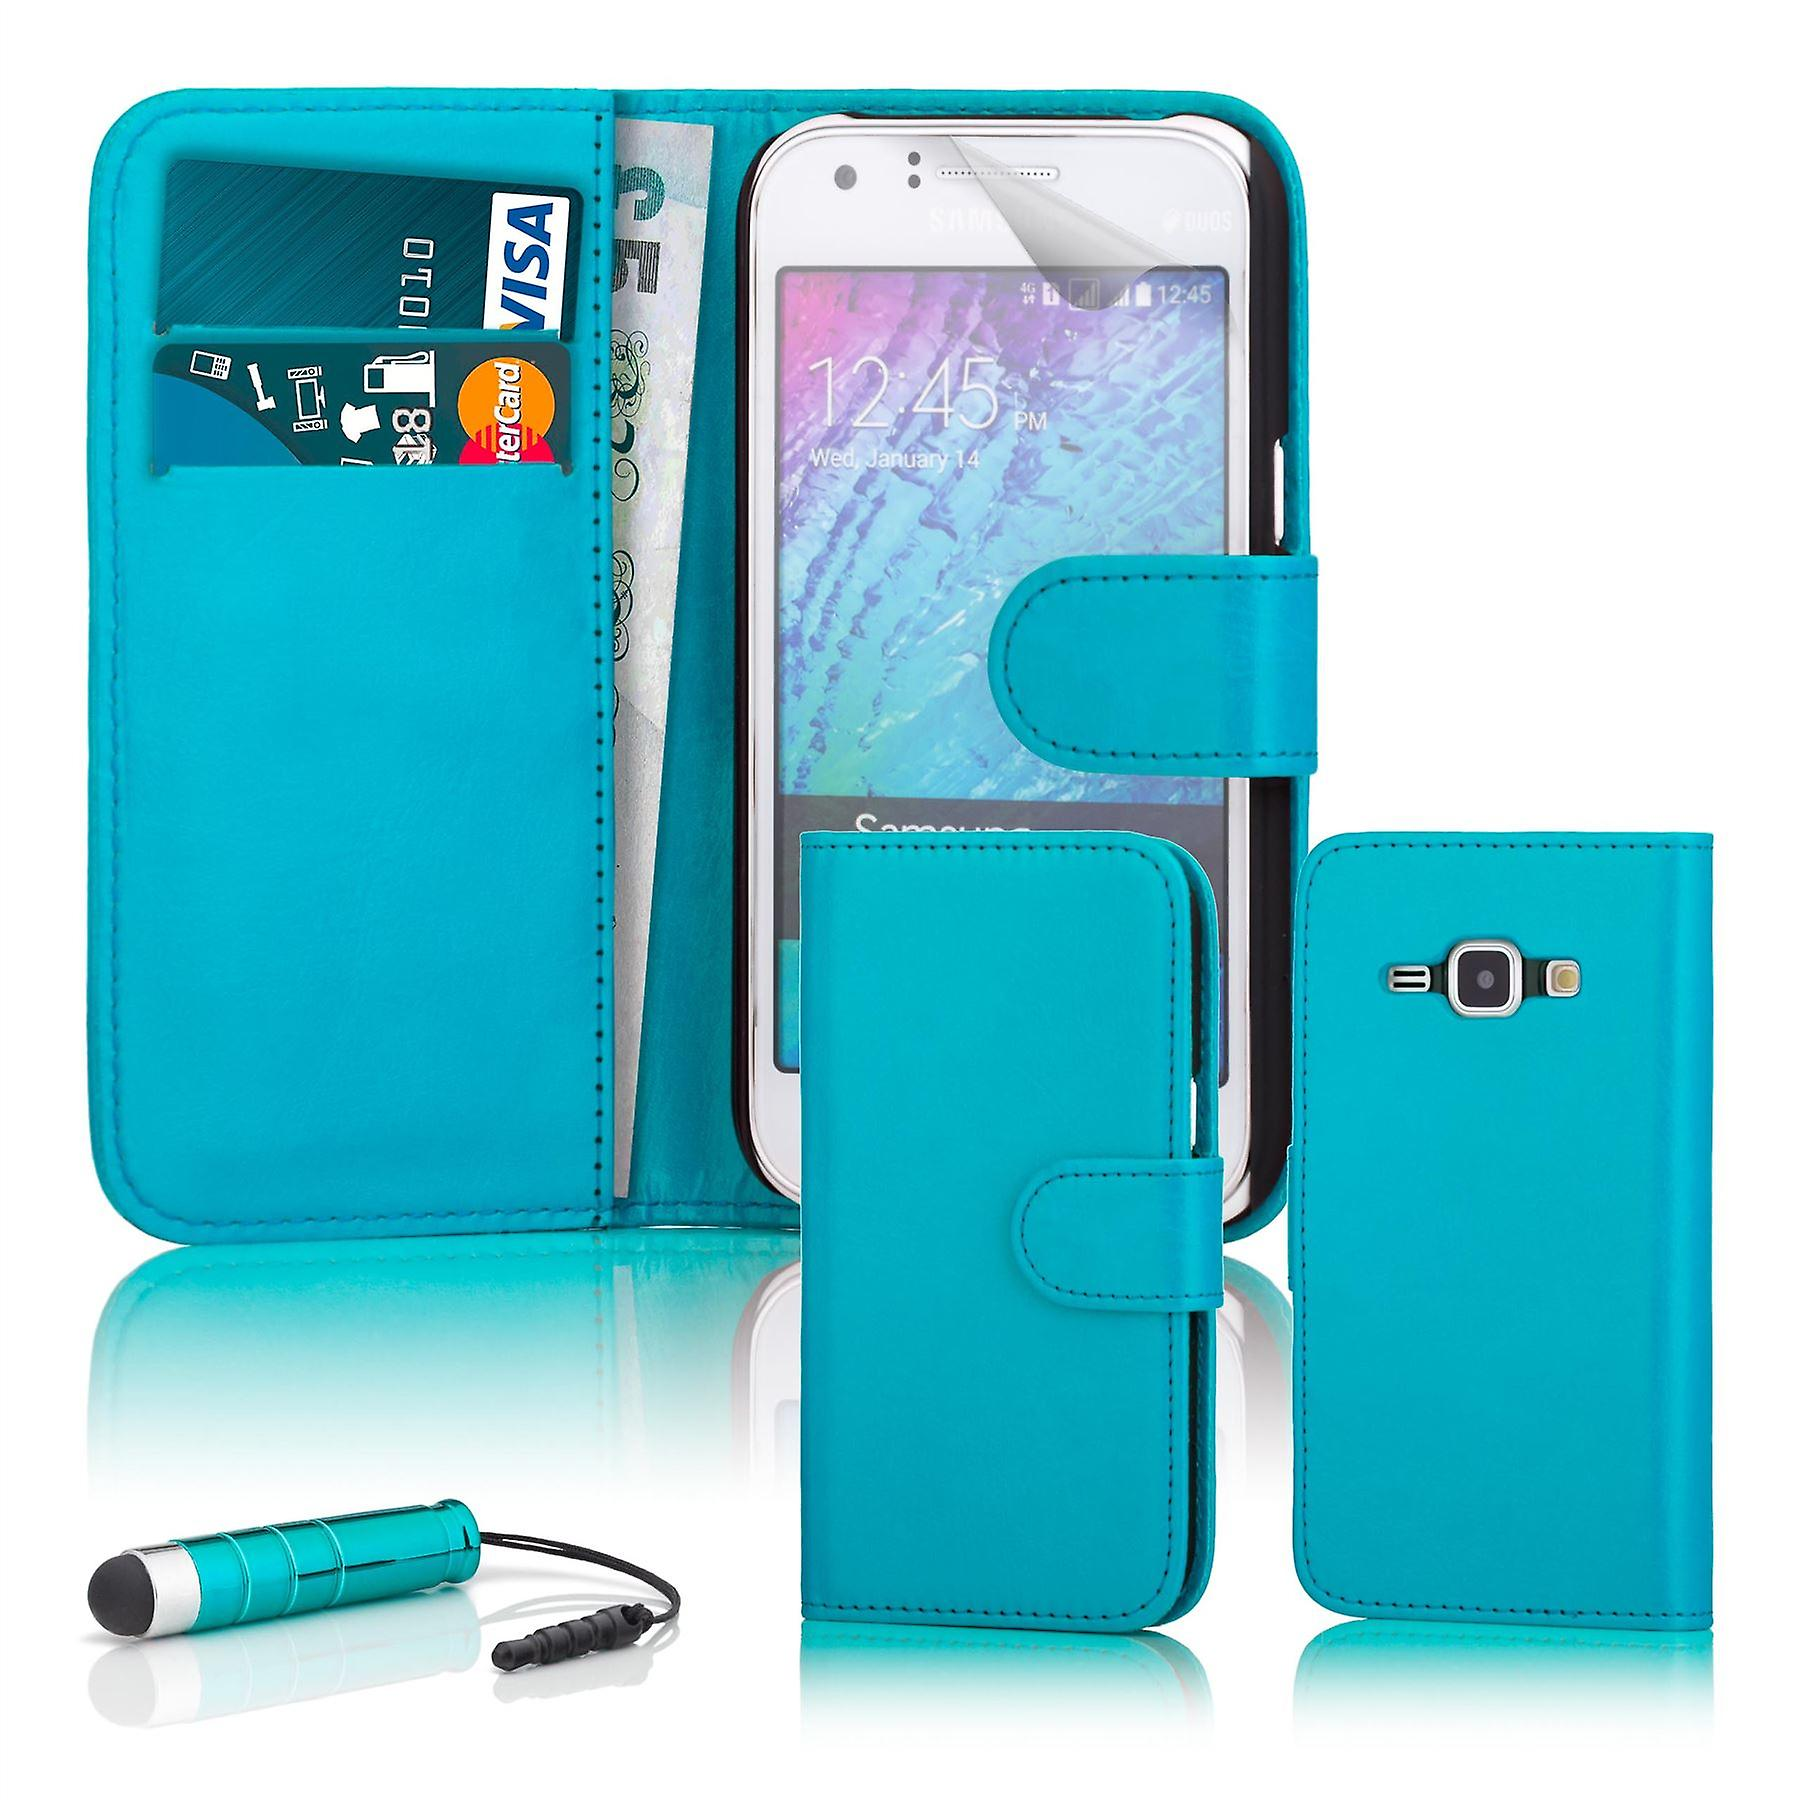 Book wallet case + stylus for Samsung Galaxy Trend 2 Lite - Light Blue